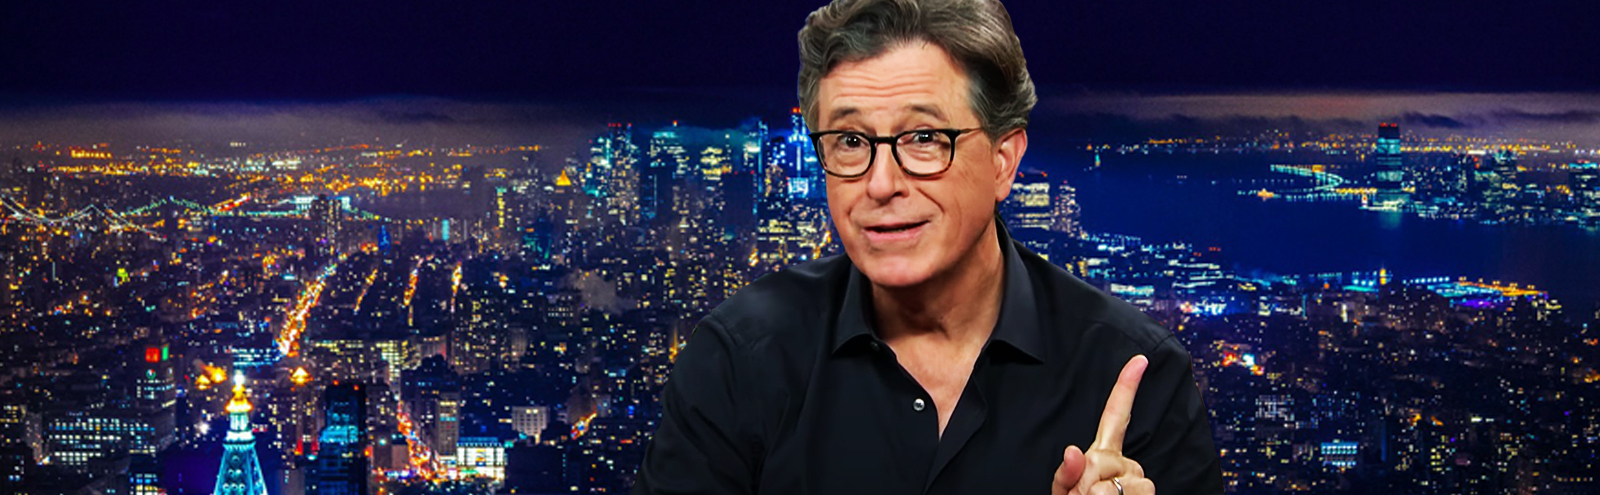 Stephen Colbert Has Found His Voice In An Impossibly Tumultuous Time